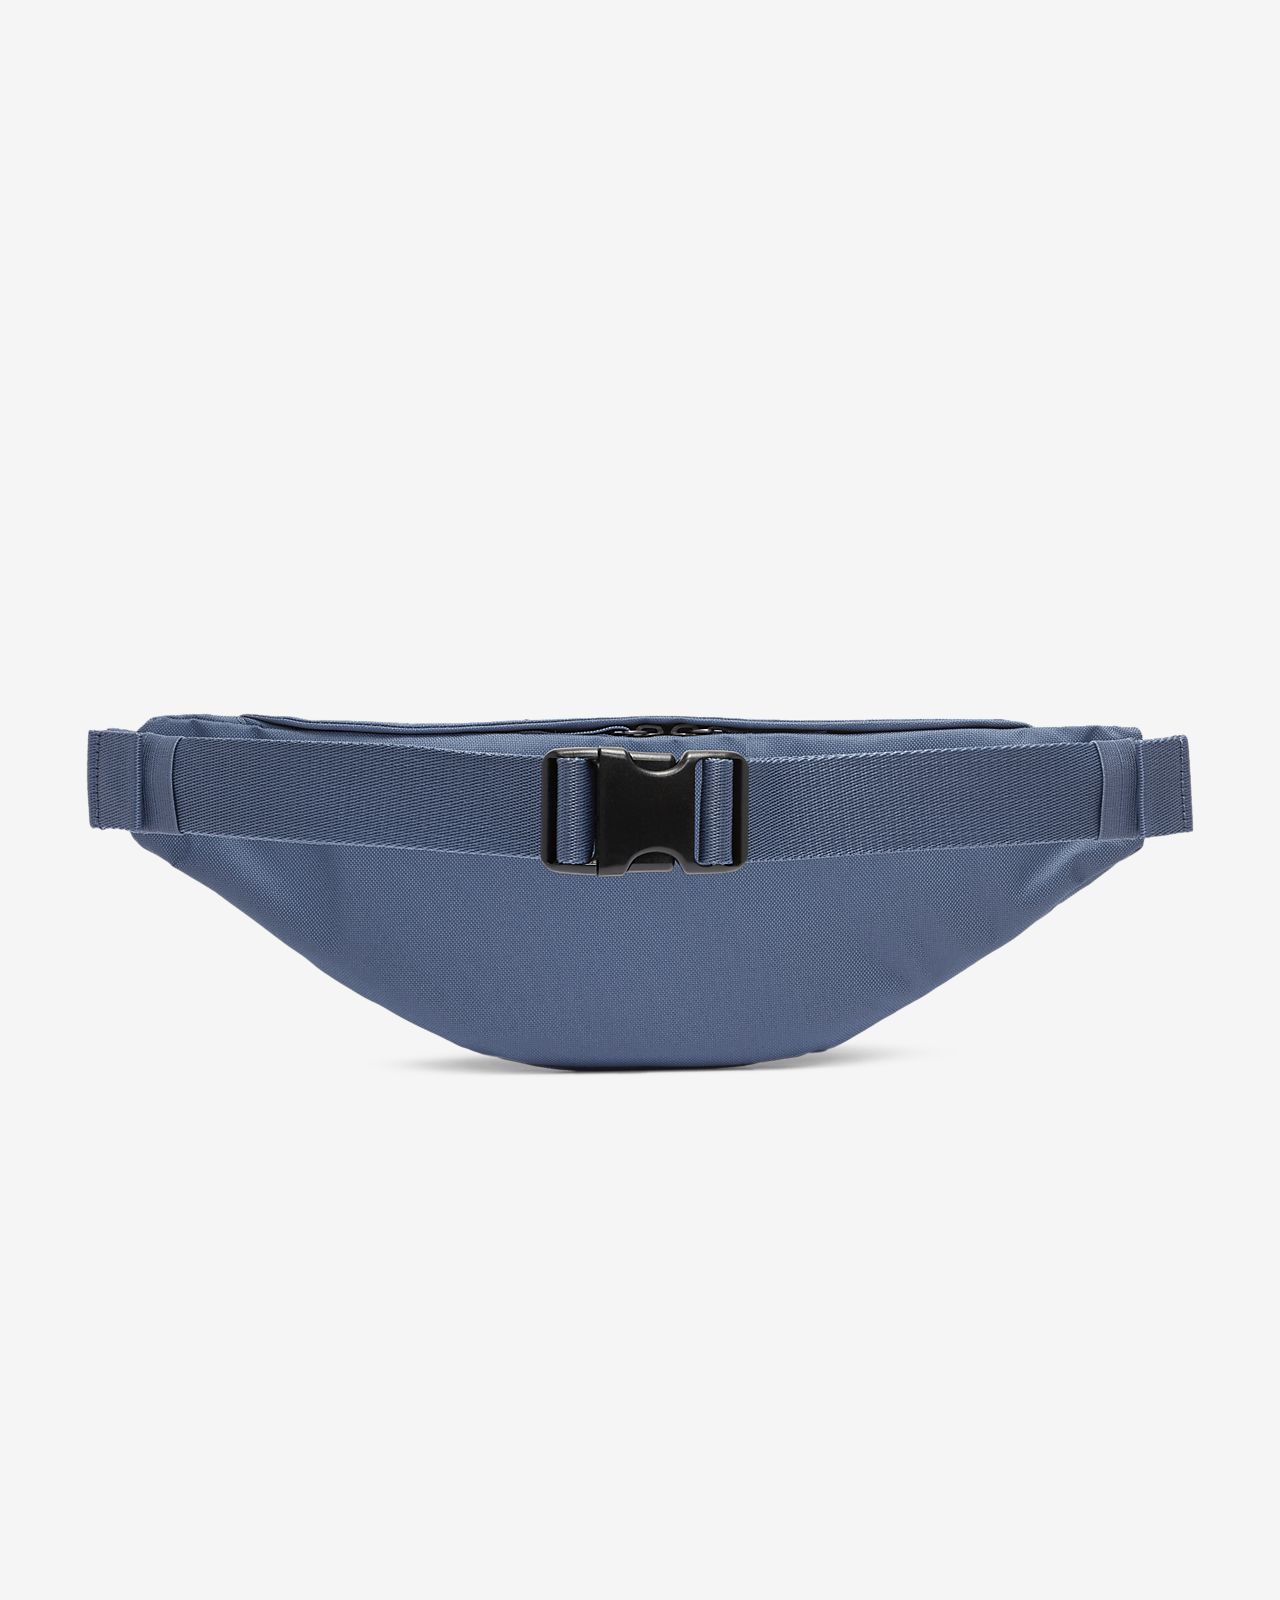 Nike Waist Bag (pouch), Men's Fashion, Bags & Wallets on